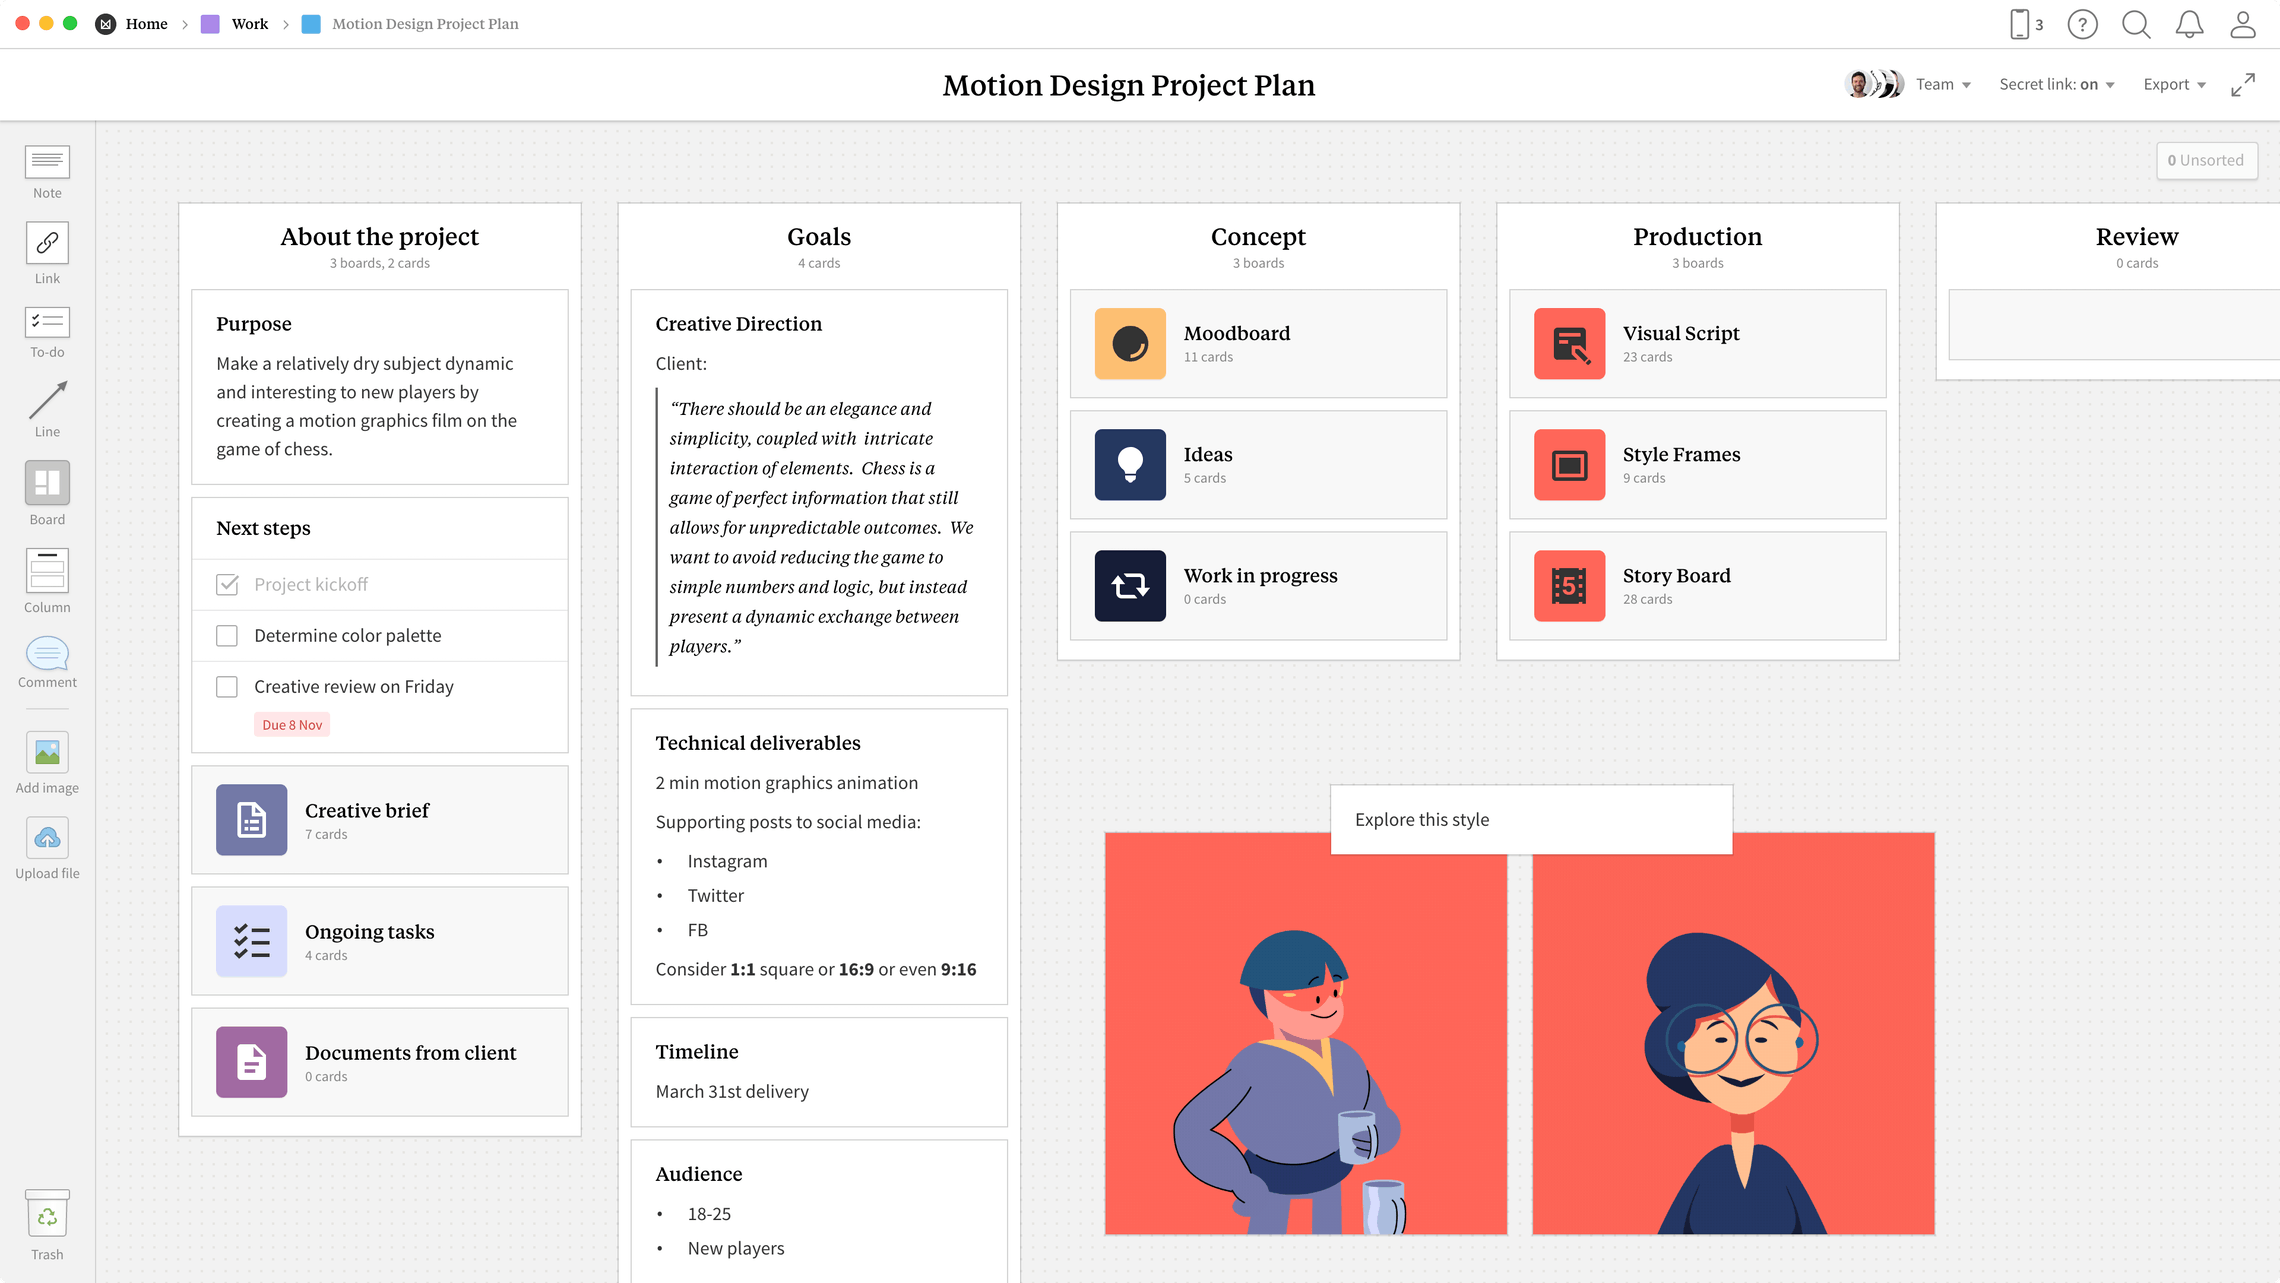 Motion Design Project Plan Template, within the Milanote app